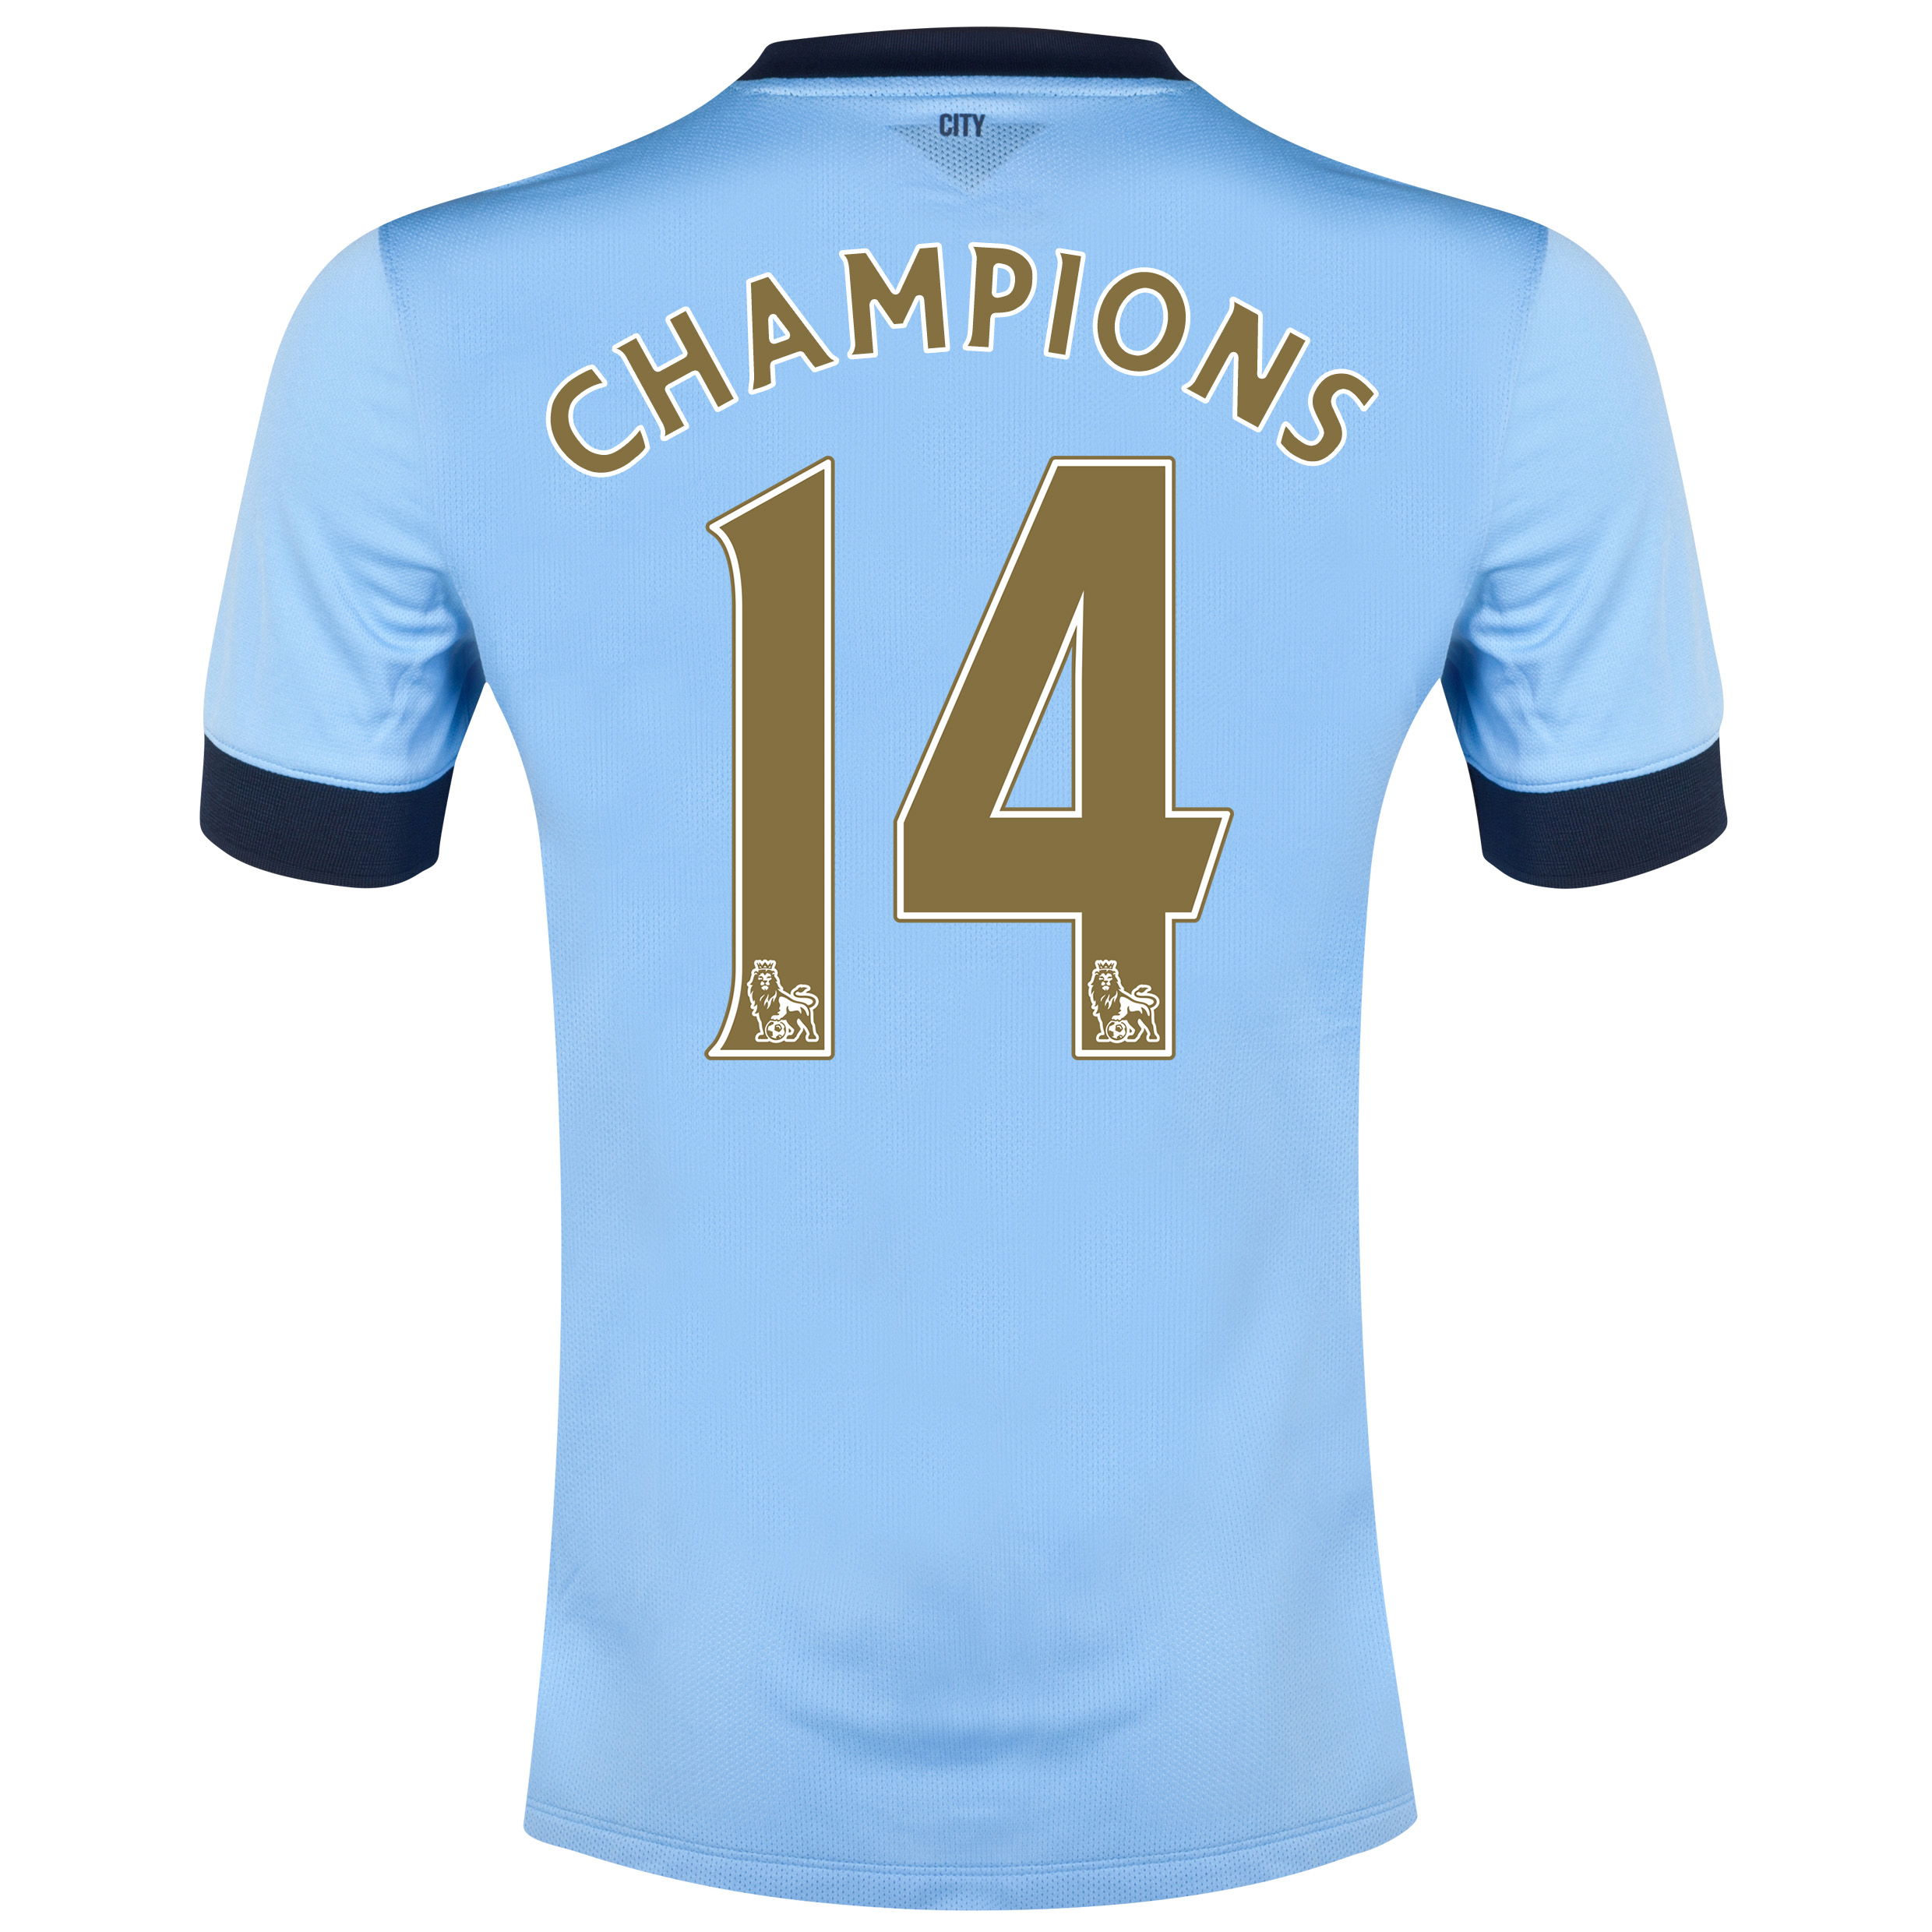 Manchester City Home Shirt 2014/15 Sky Blue with Gold Champions 14 printing